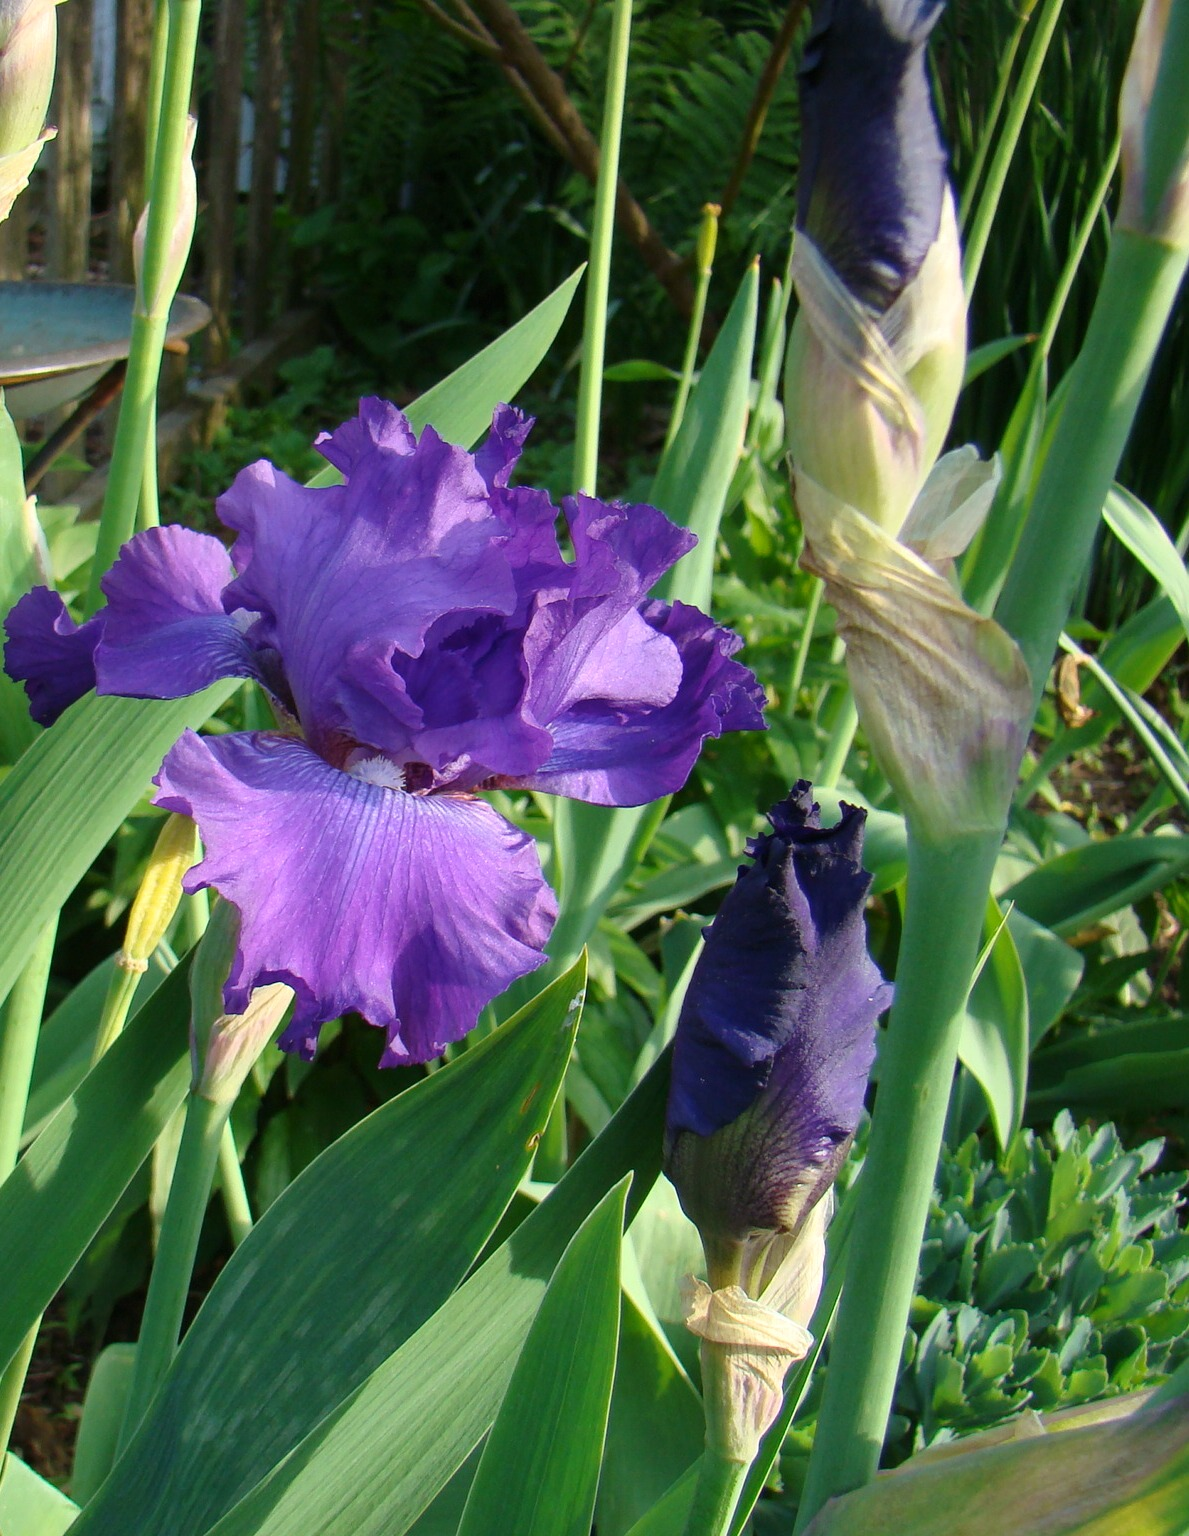 This free picture by David P. Offutt the Gastronomic Gardener in his midwest garden shows a closeup of a pretty blue iris